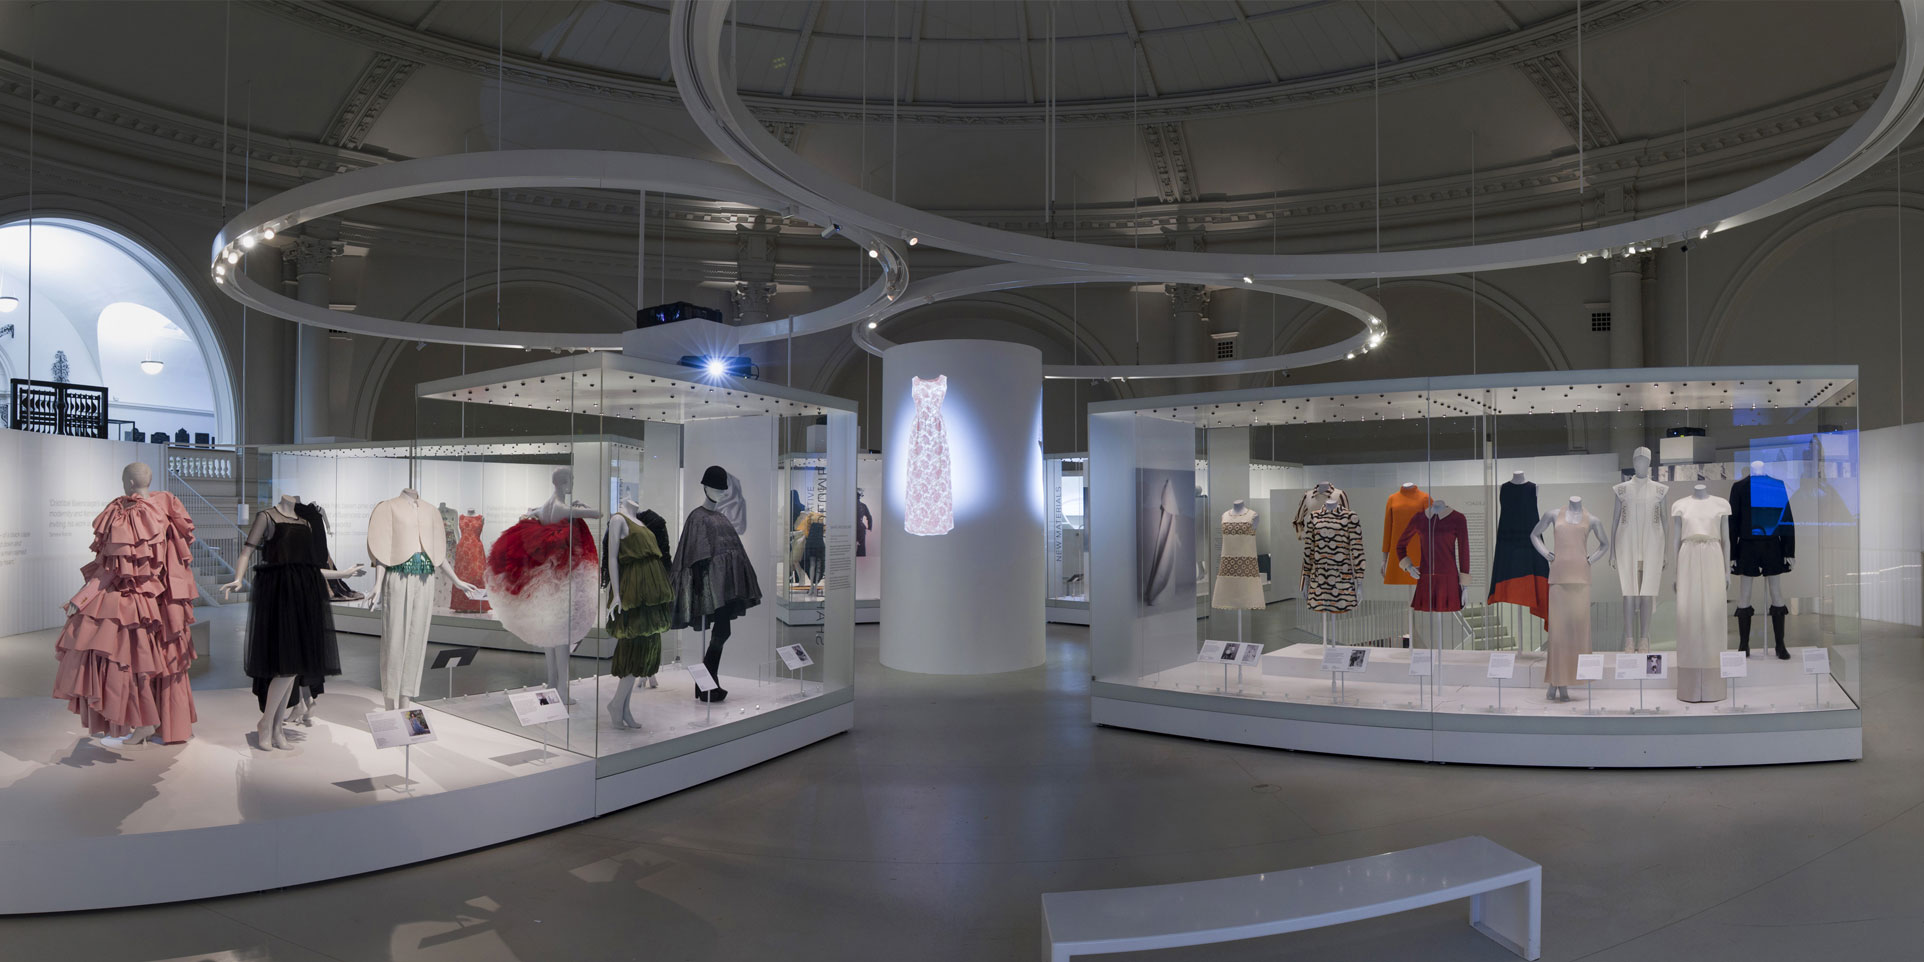 Balenciaga-Shaping-Fashion-Exhibition-View_2